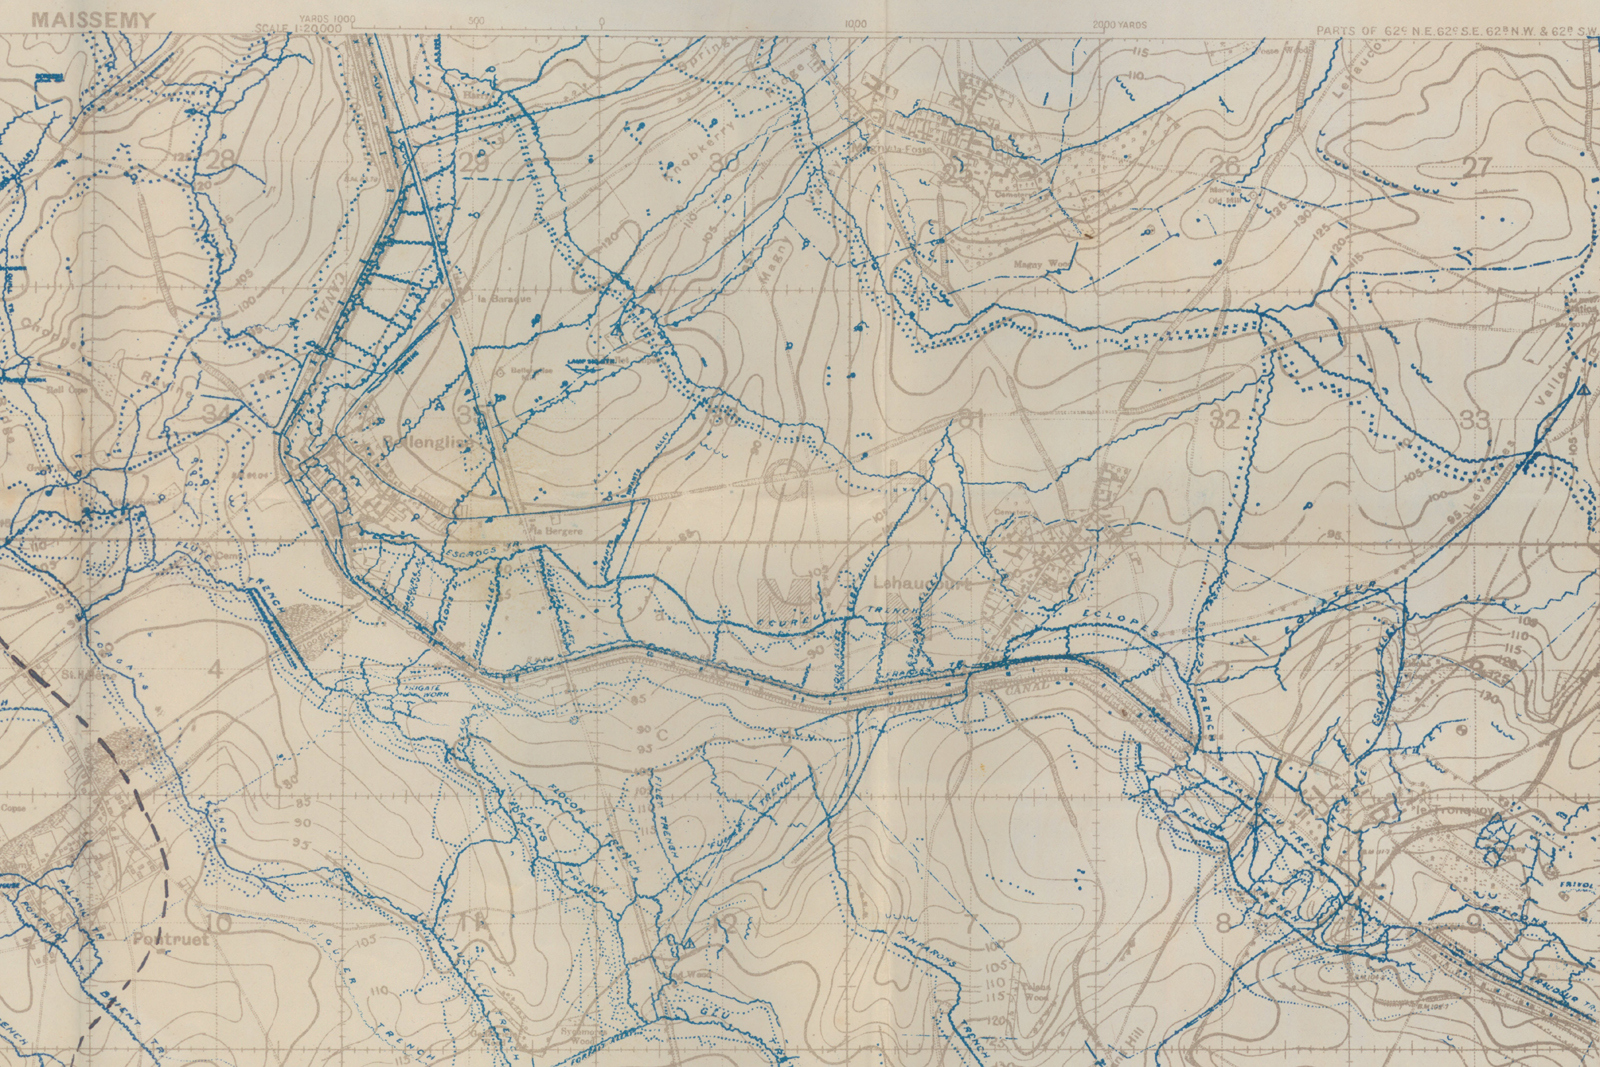 File:WW1 Trench Map of Maissemy crop.jpg - Wikimedia Commons